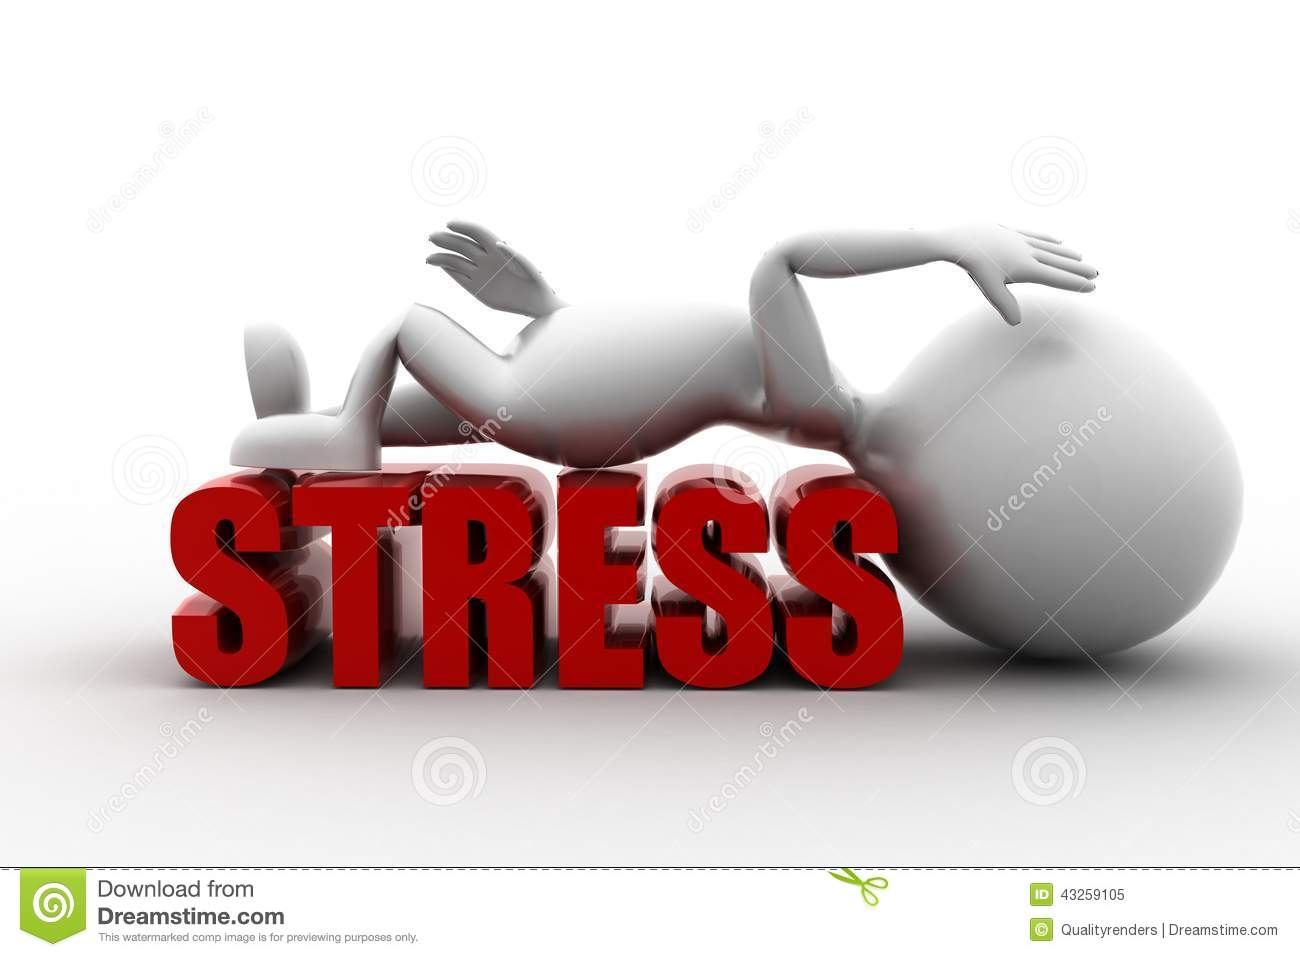 d-man-stress-concept-white-background-front-angle-view-43259105.jpg